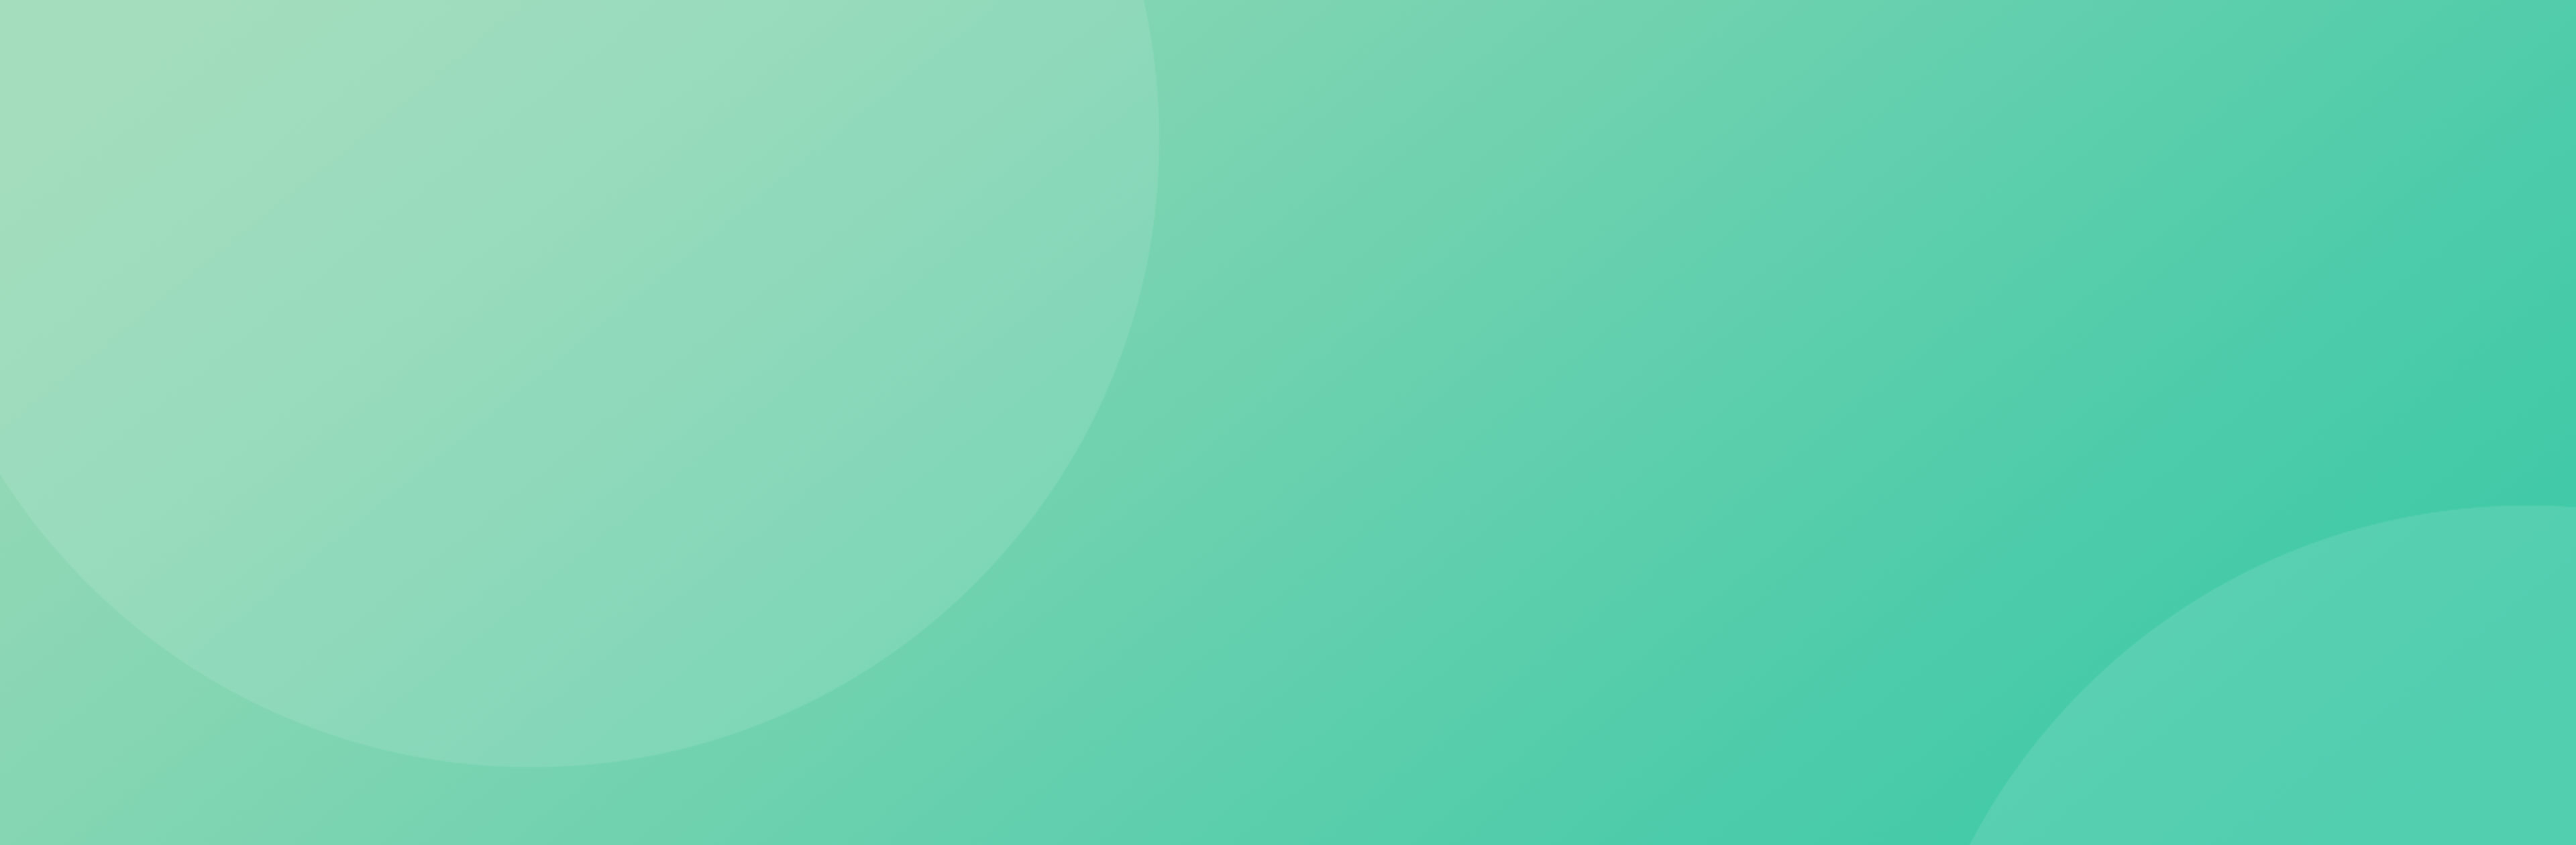 Green background with faint two circles on either side